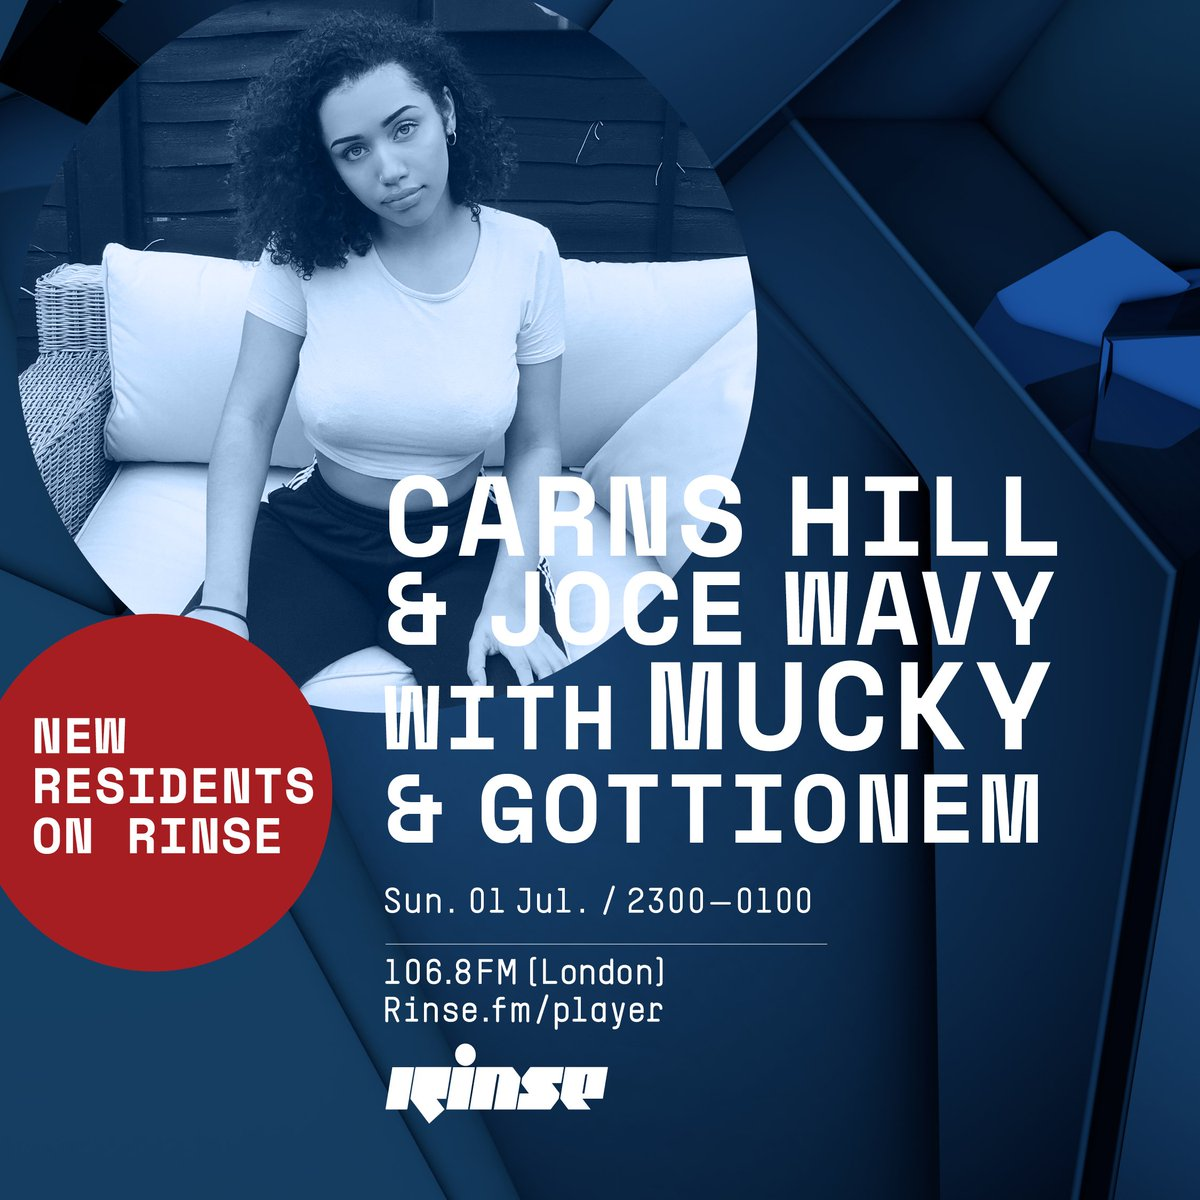 rinse fm on twitter live right now it s carnshill jocewavy